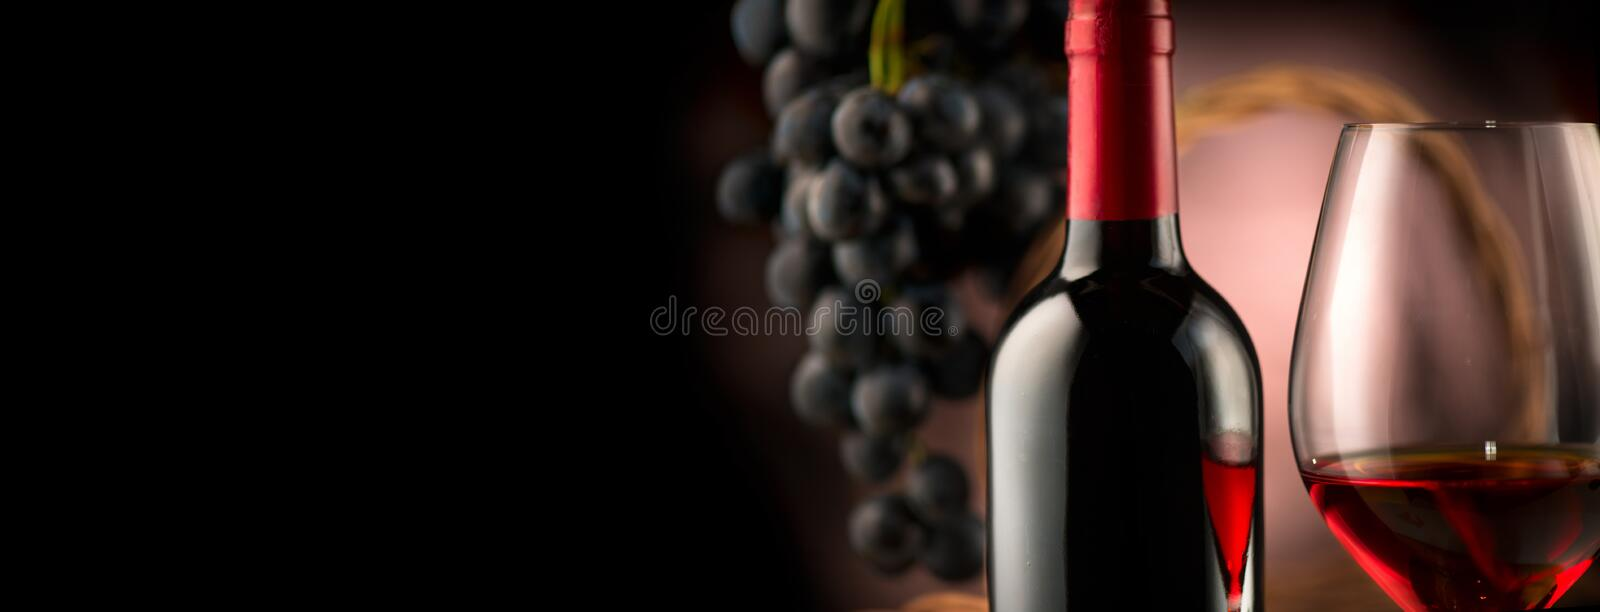 Wine. Bottle and glass of red wine with ripe grapes royalty free stock image